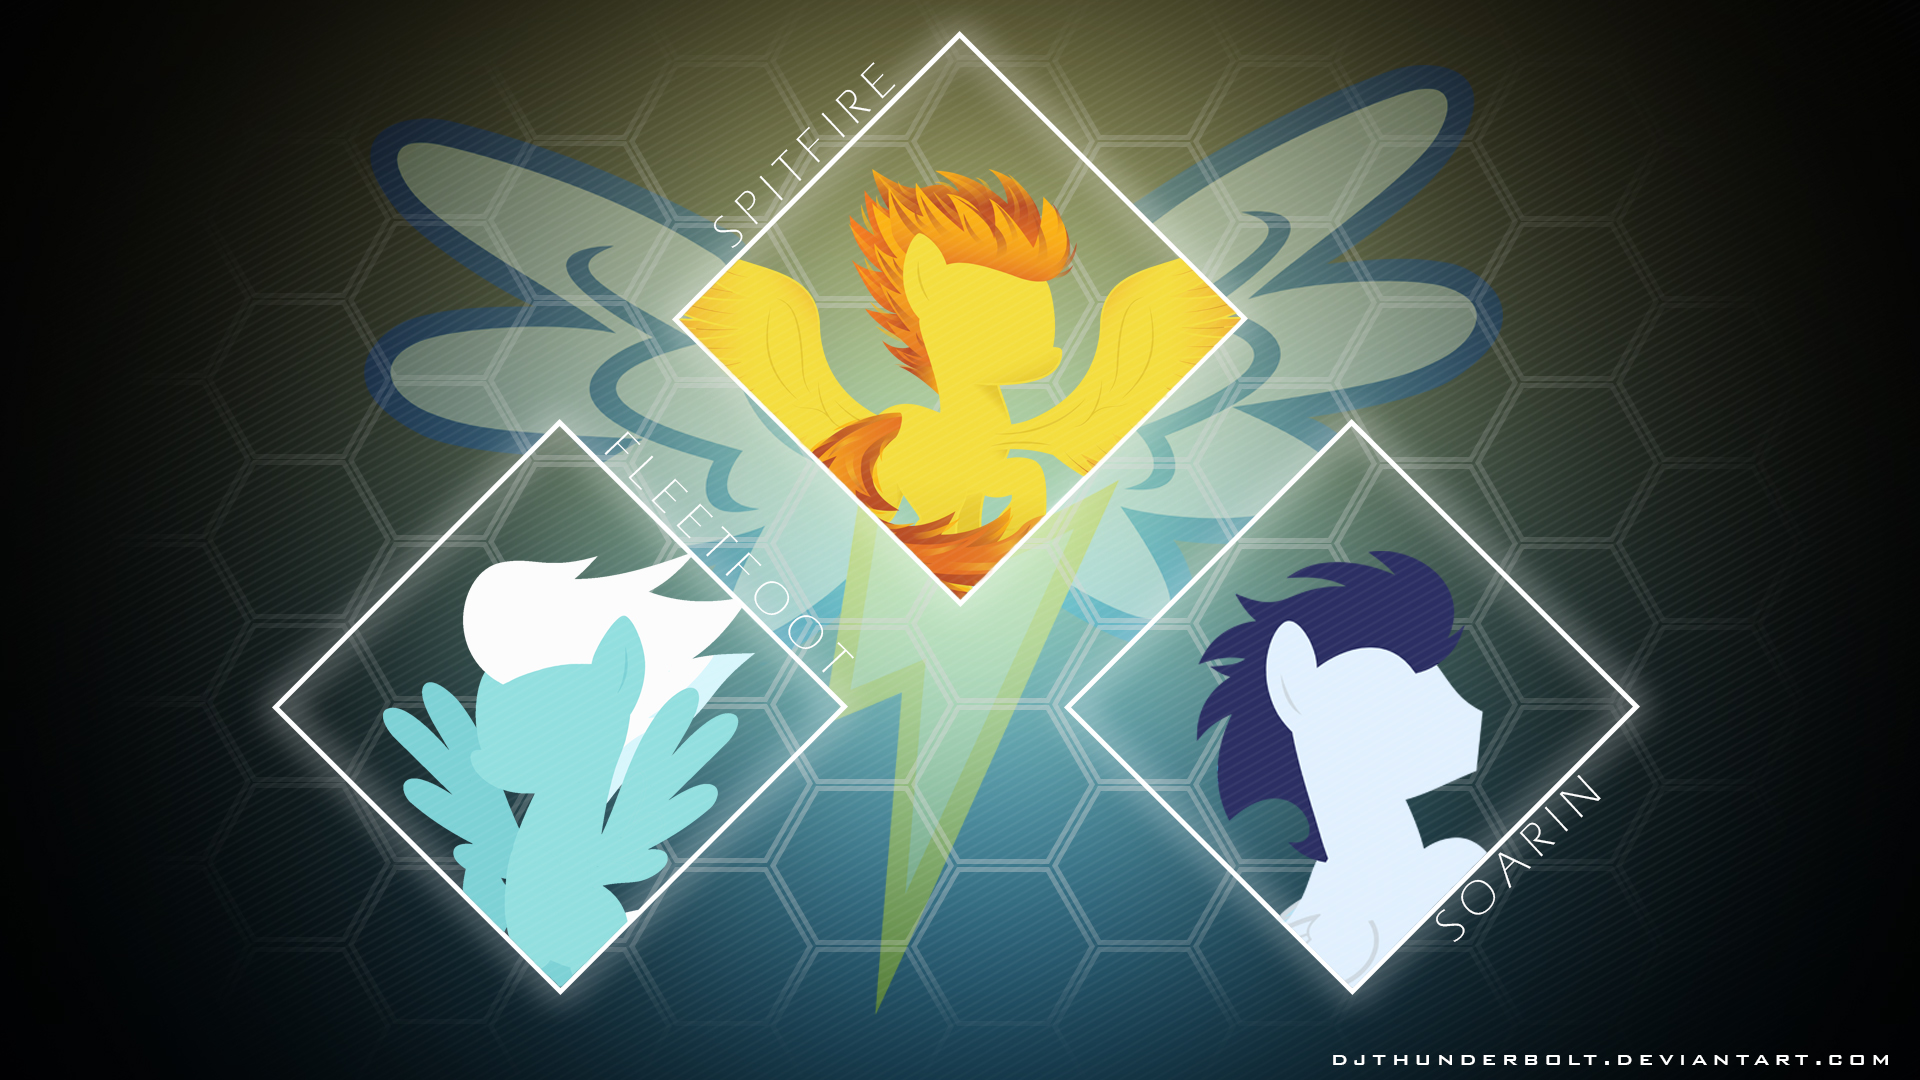 Wonderbolt Wallpaper by ChainChomp2, civgod666, D4SVader, IIThunderboltII and Philipp04